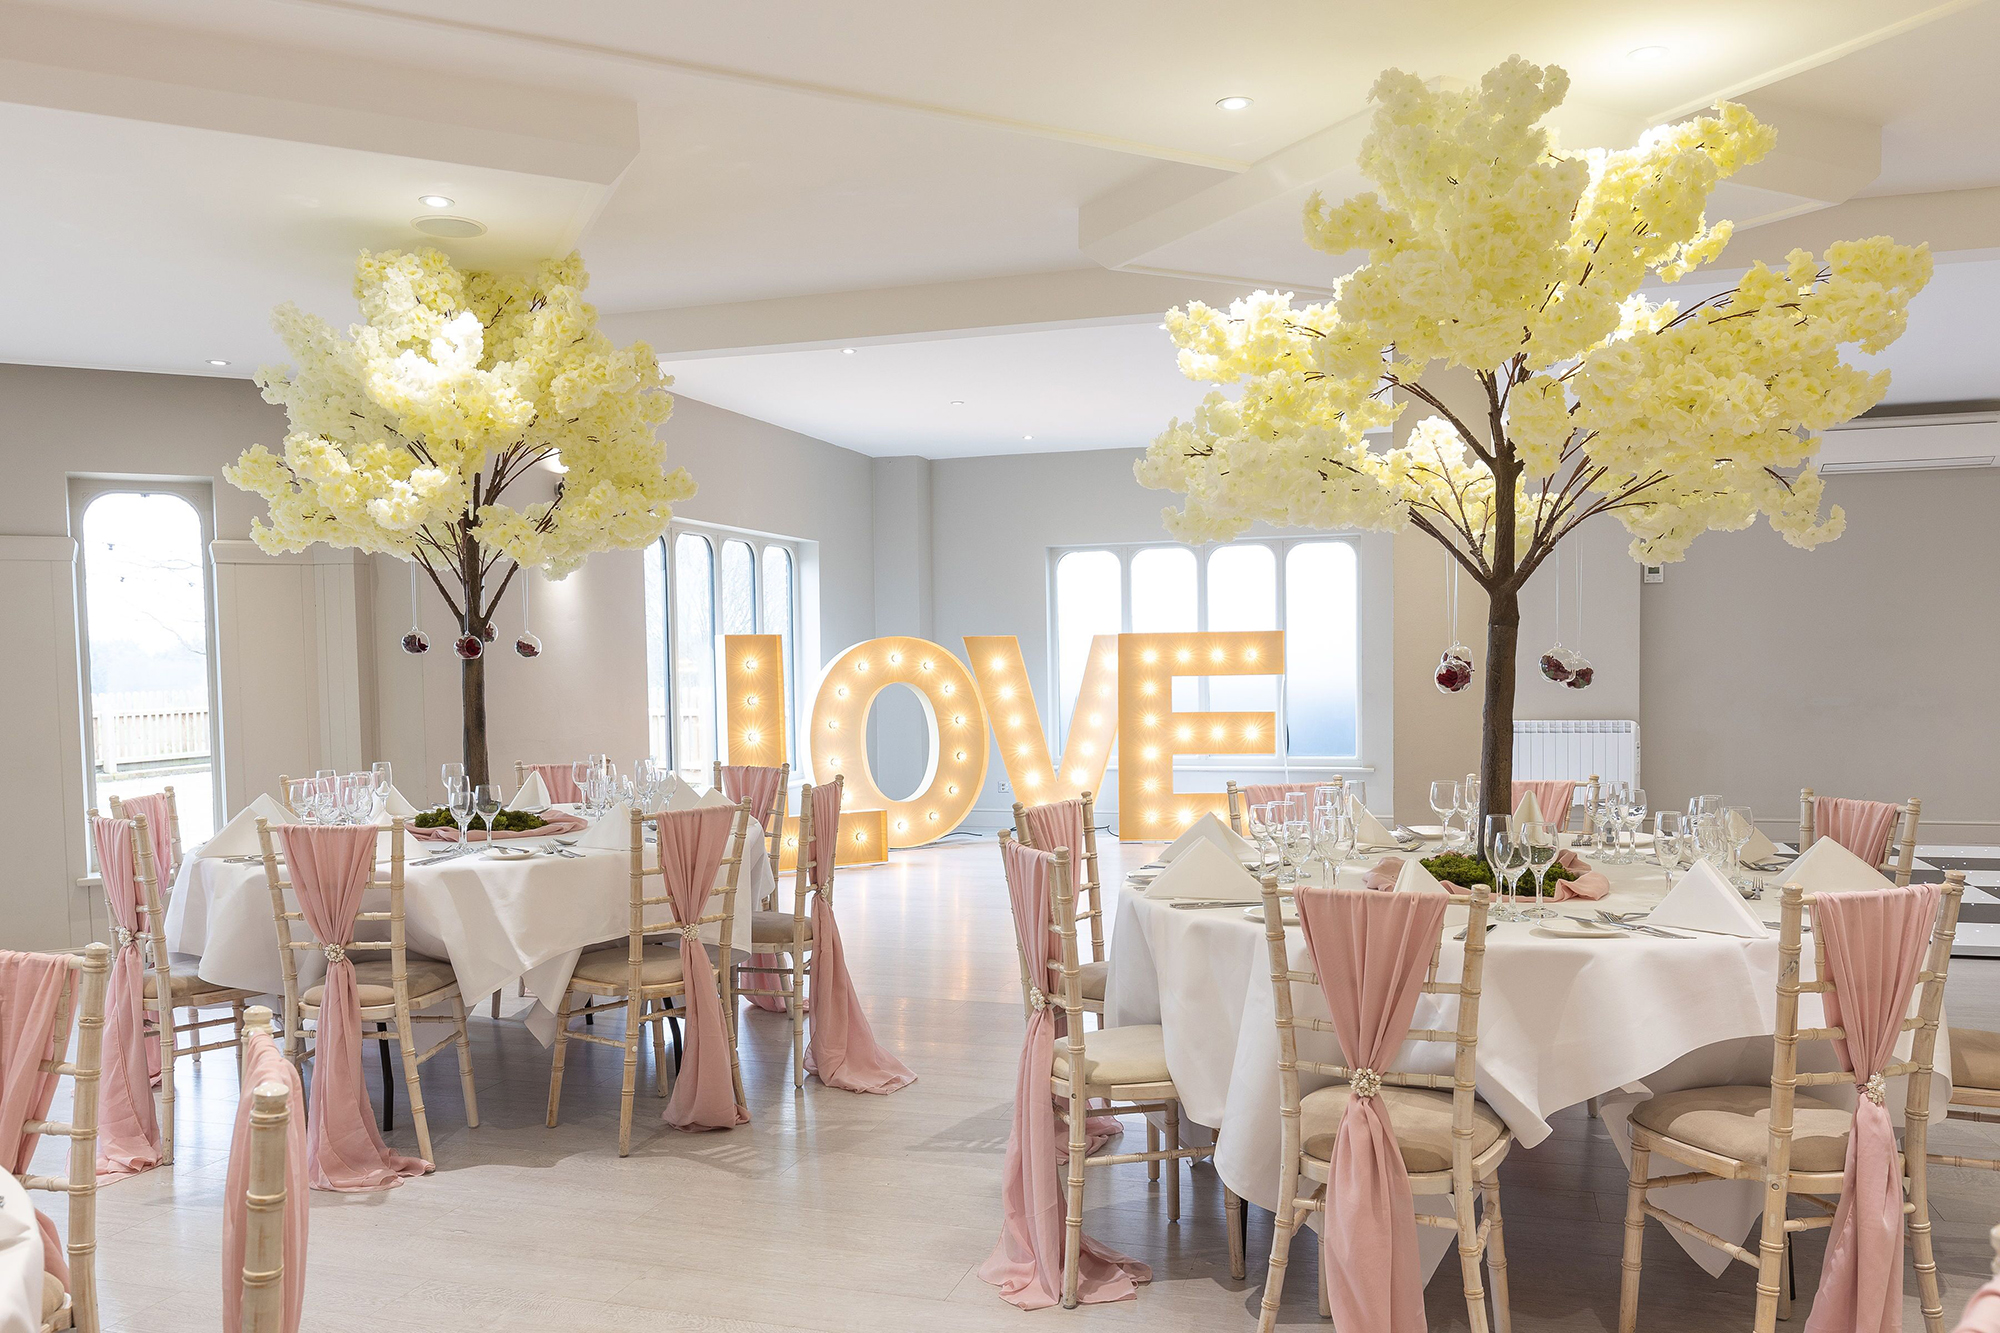 Beautiful laid tables and trees with a yellow, pink and white theme ready for the wedding breakfast, in the main function room at All Saints Hotel